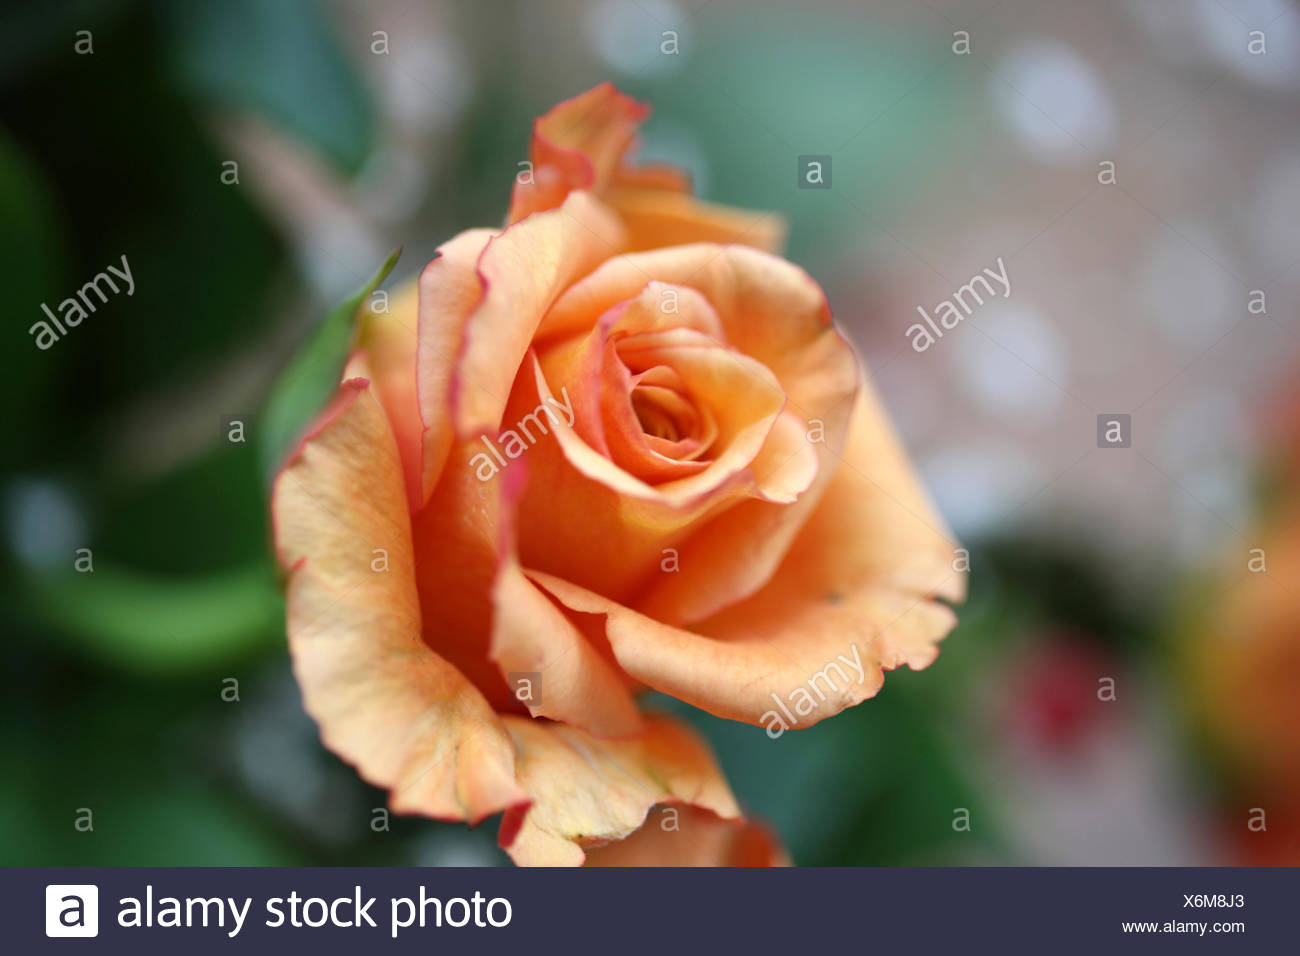 flowers, rose, Stock Photo